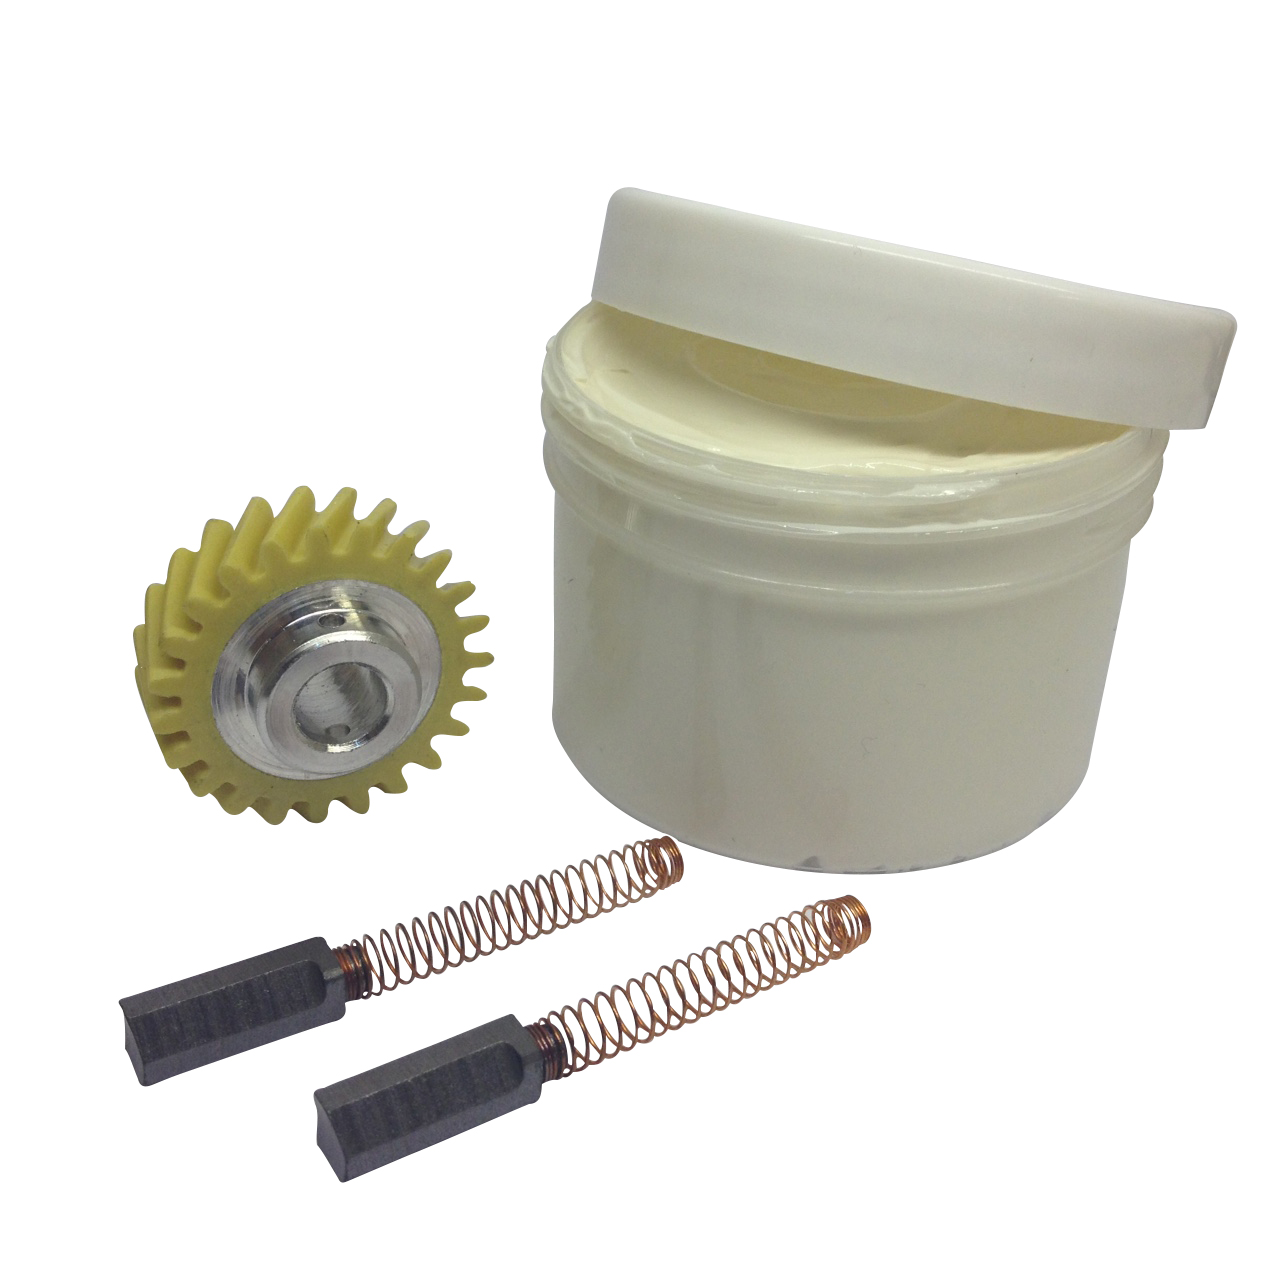 Kitchenaid Worm Pinion Gear 2 X Motor Brushes 130g Of